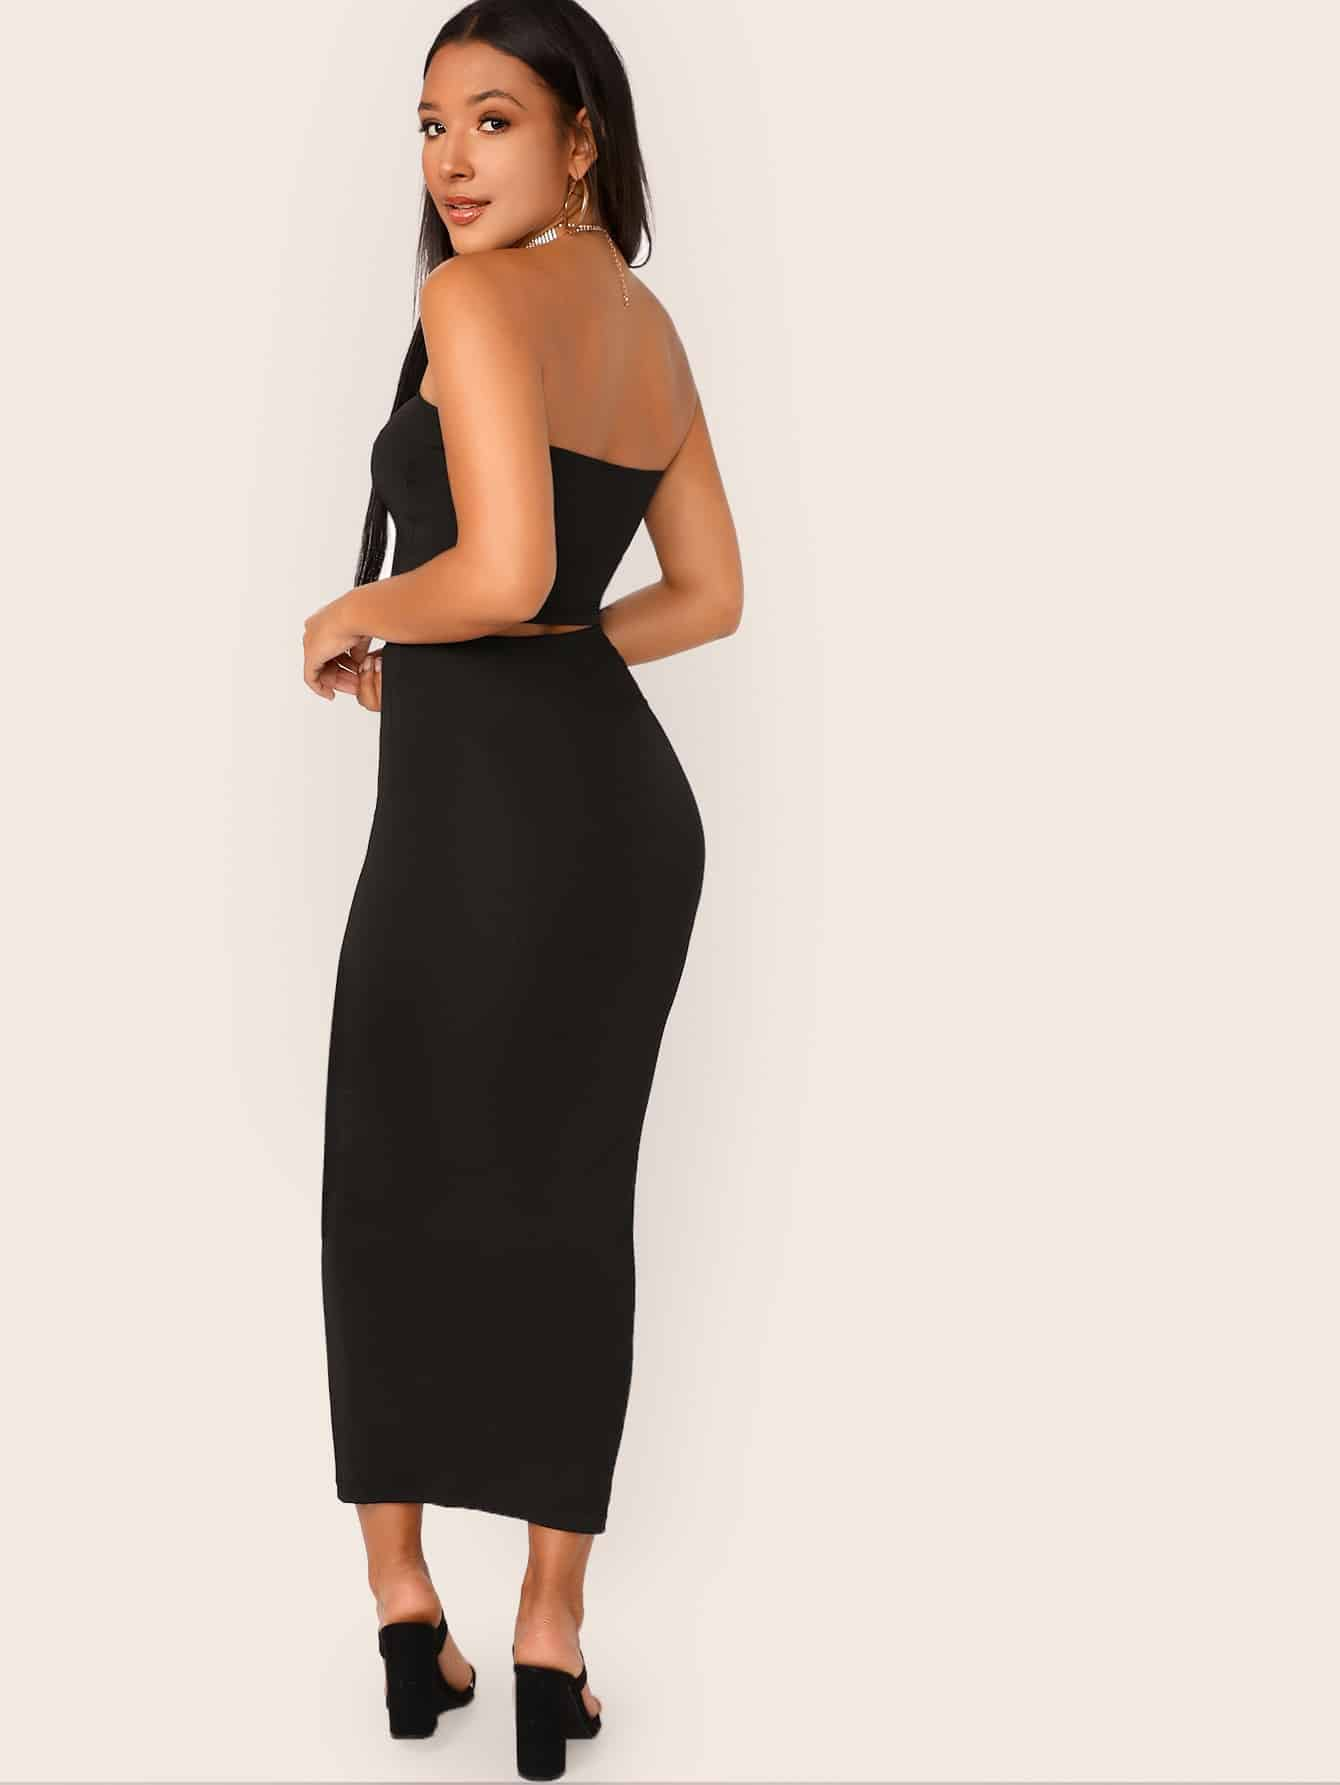 Solid Cropped Tube Top & Pencil Midi Skirt Set - FLJ CORPORATIONS